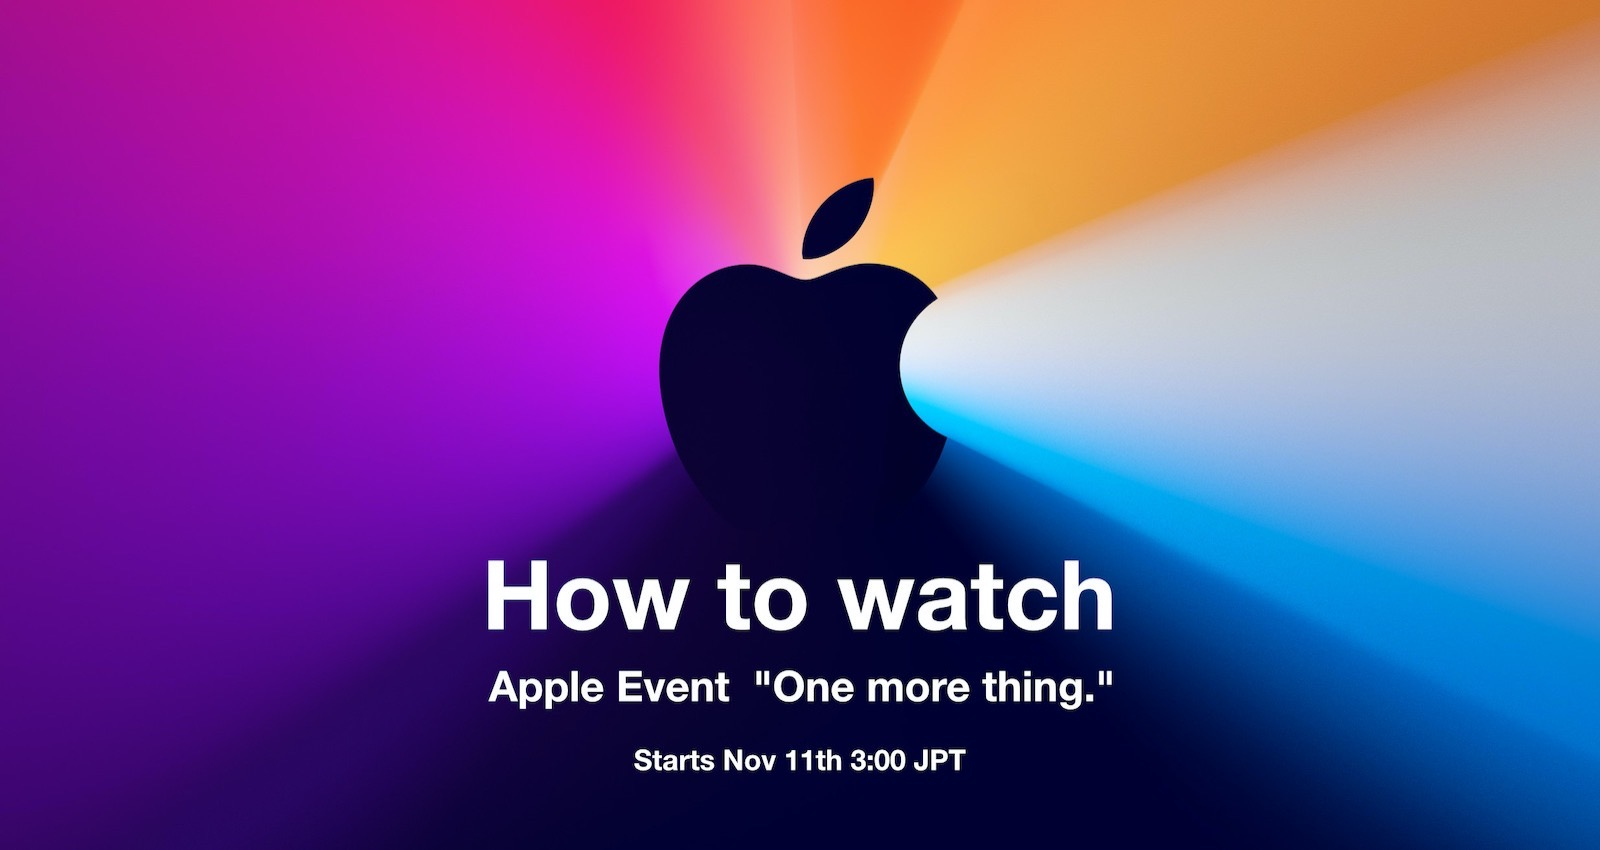 How to watch One more thing event